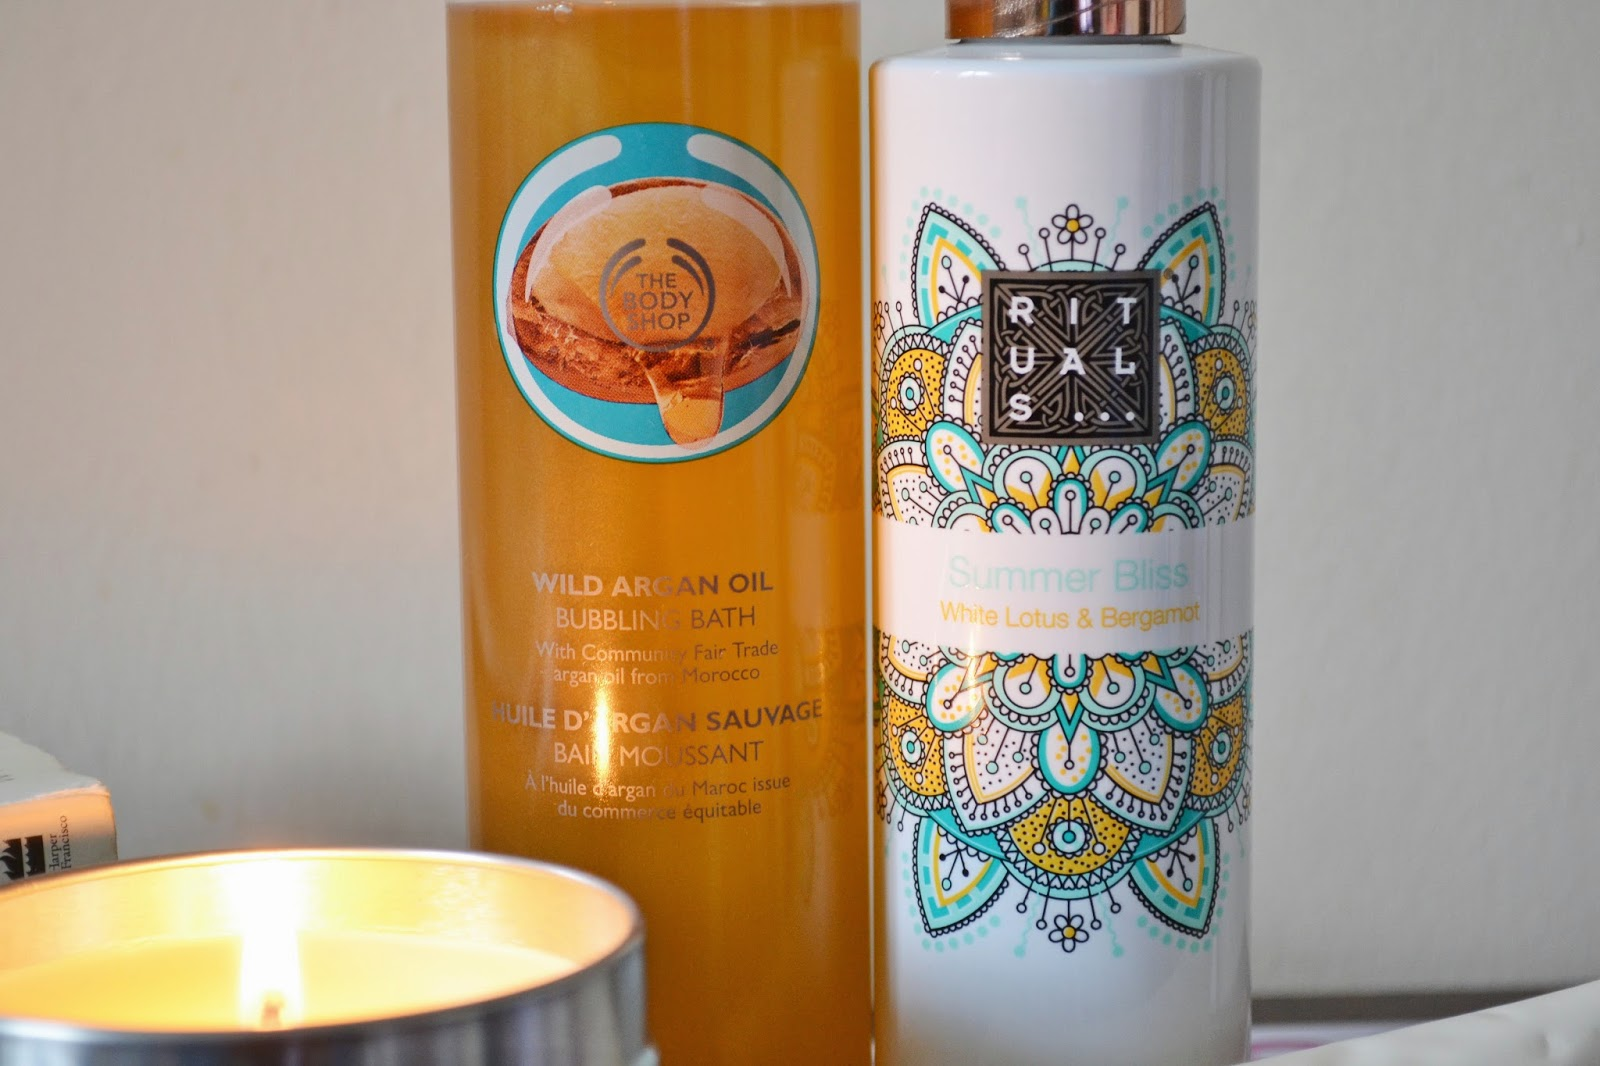 Relaxing Pamper Session ft The Body Shop Argan Oil Bubbling Bath, Rituals Summer Bliss Shower Oil - Aspiring Londoner